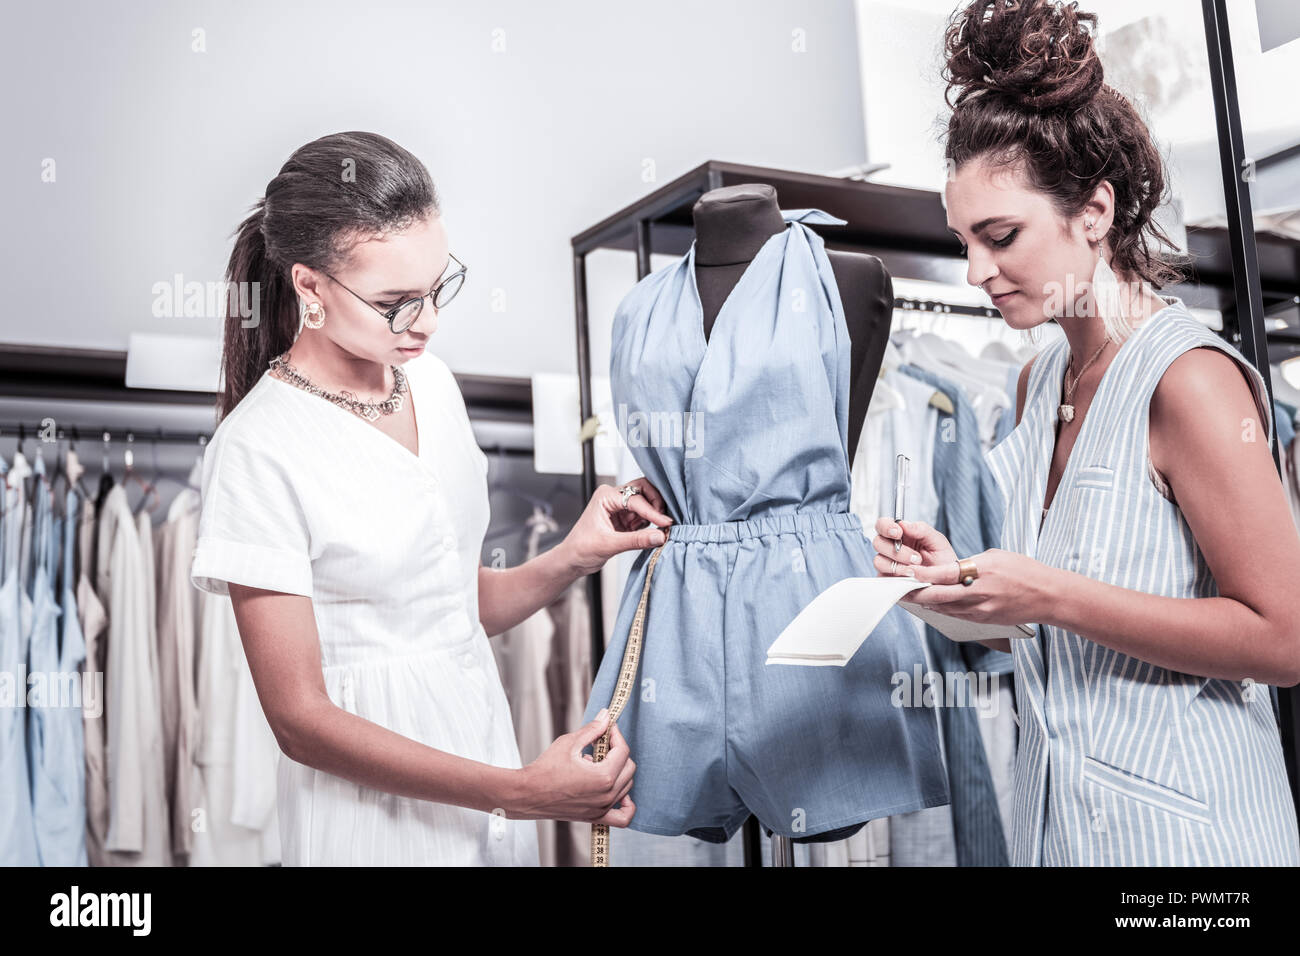 Two creative art students feeling busy while tailoring jumpsuit for their project - Stock Image